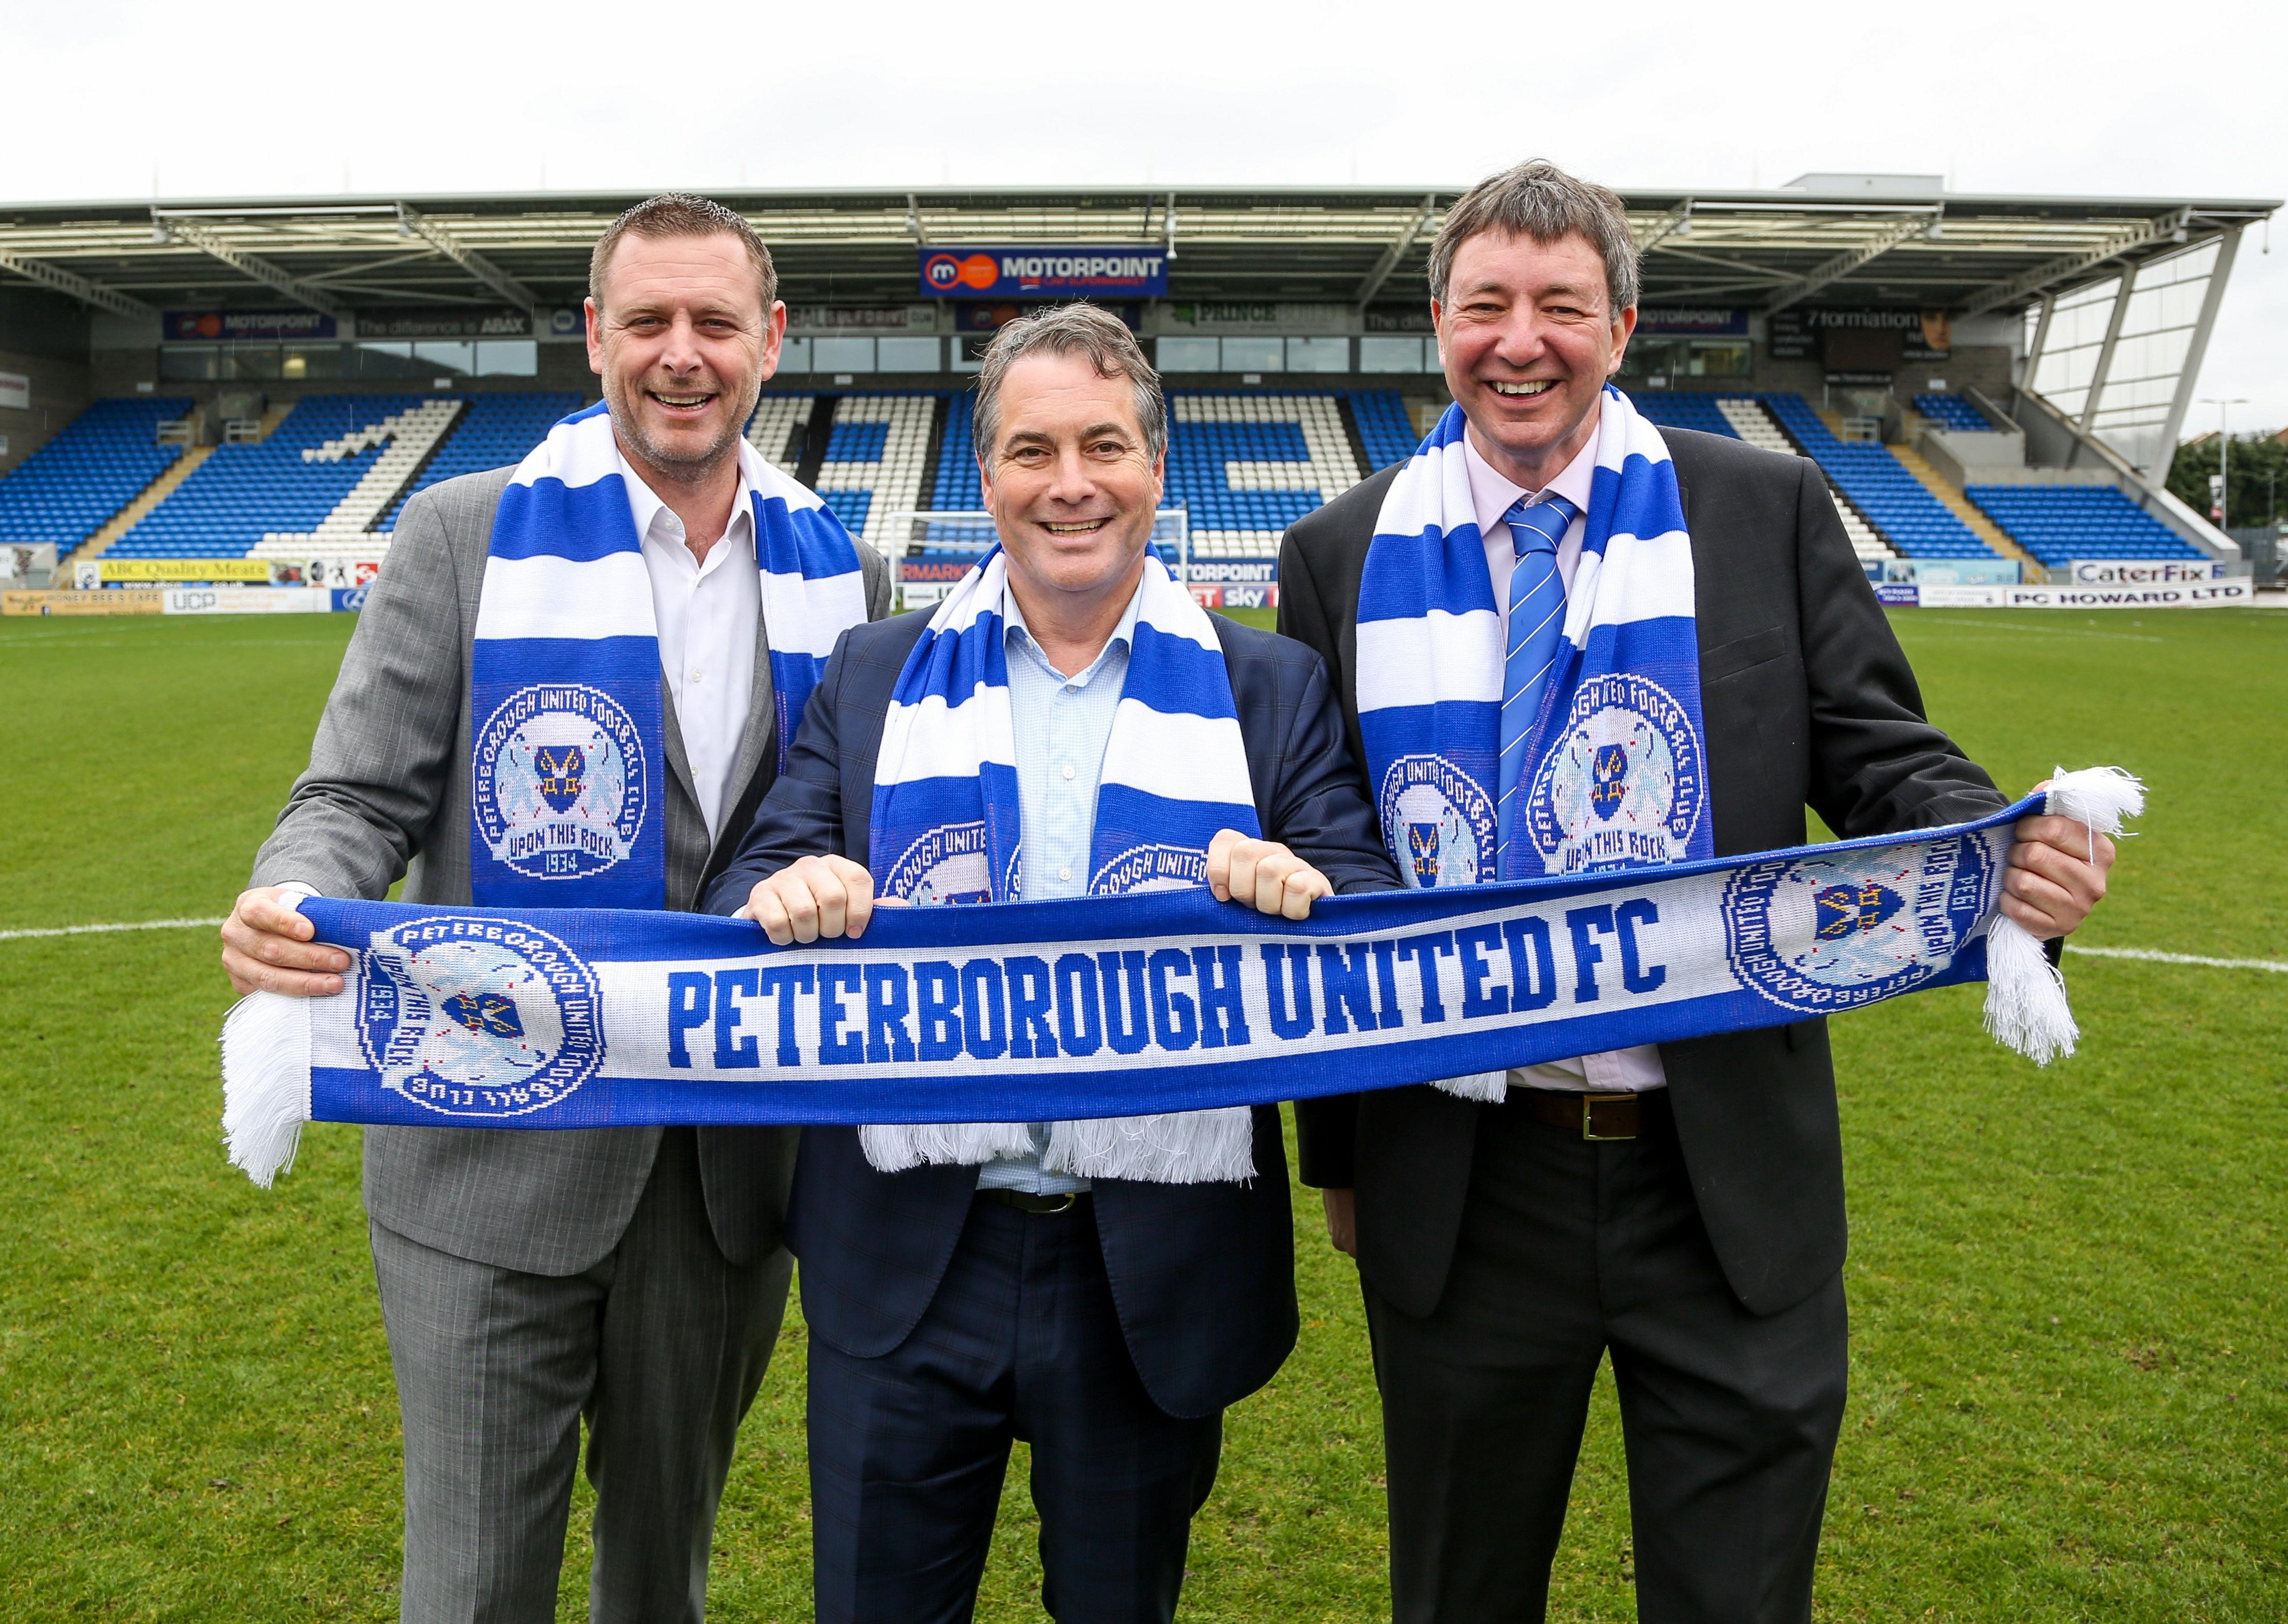 https://www.peterboroughtoday.co.uk/webimg/T0FLMTIxNTU3MjE1.jpg